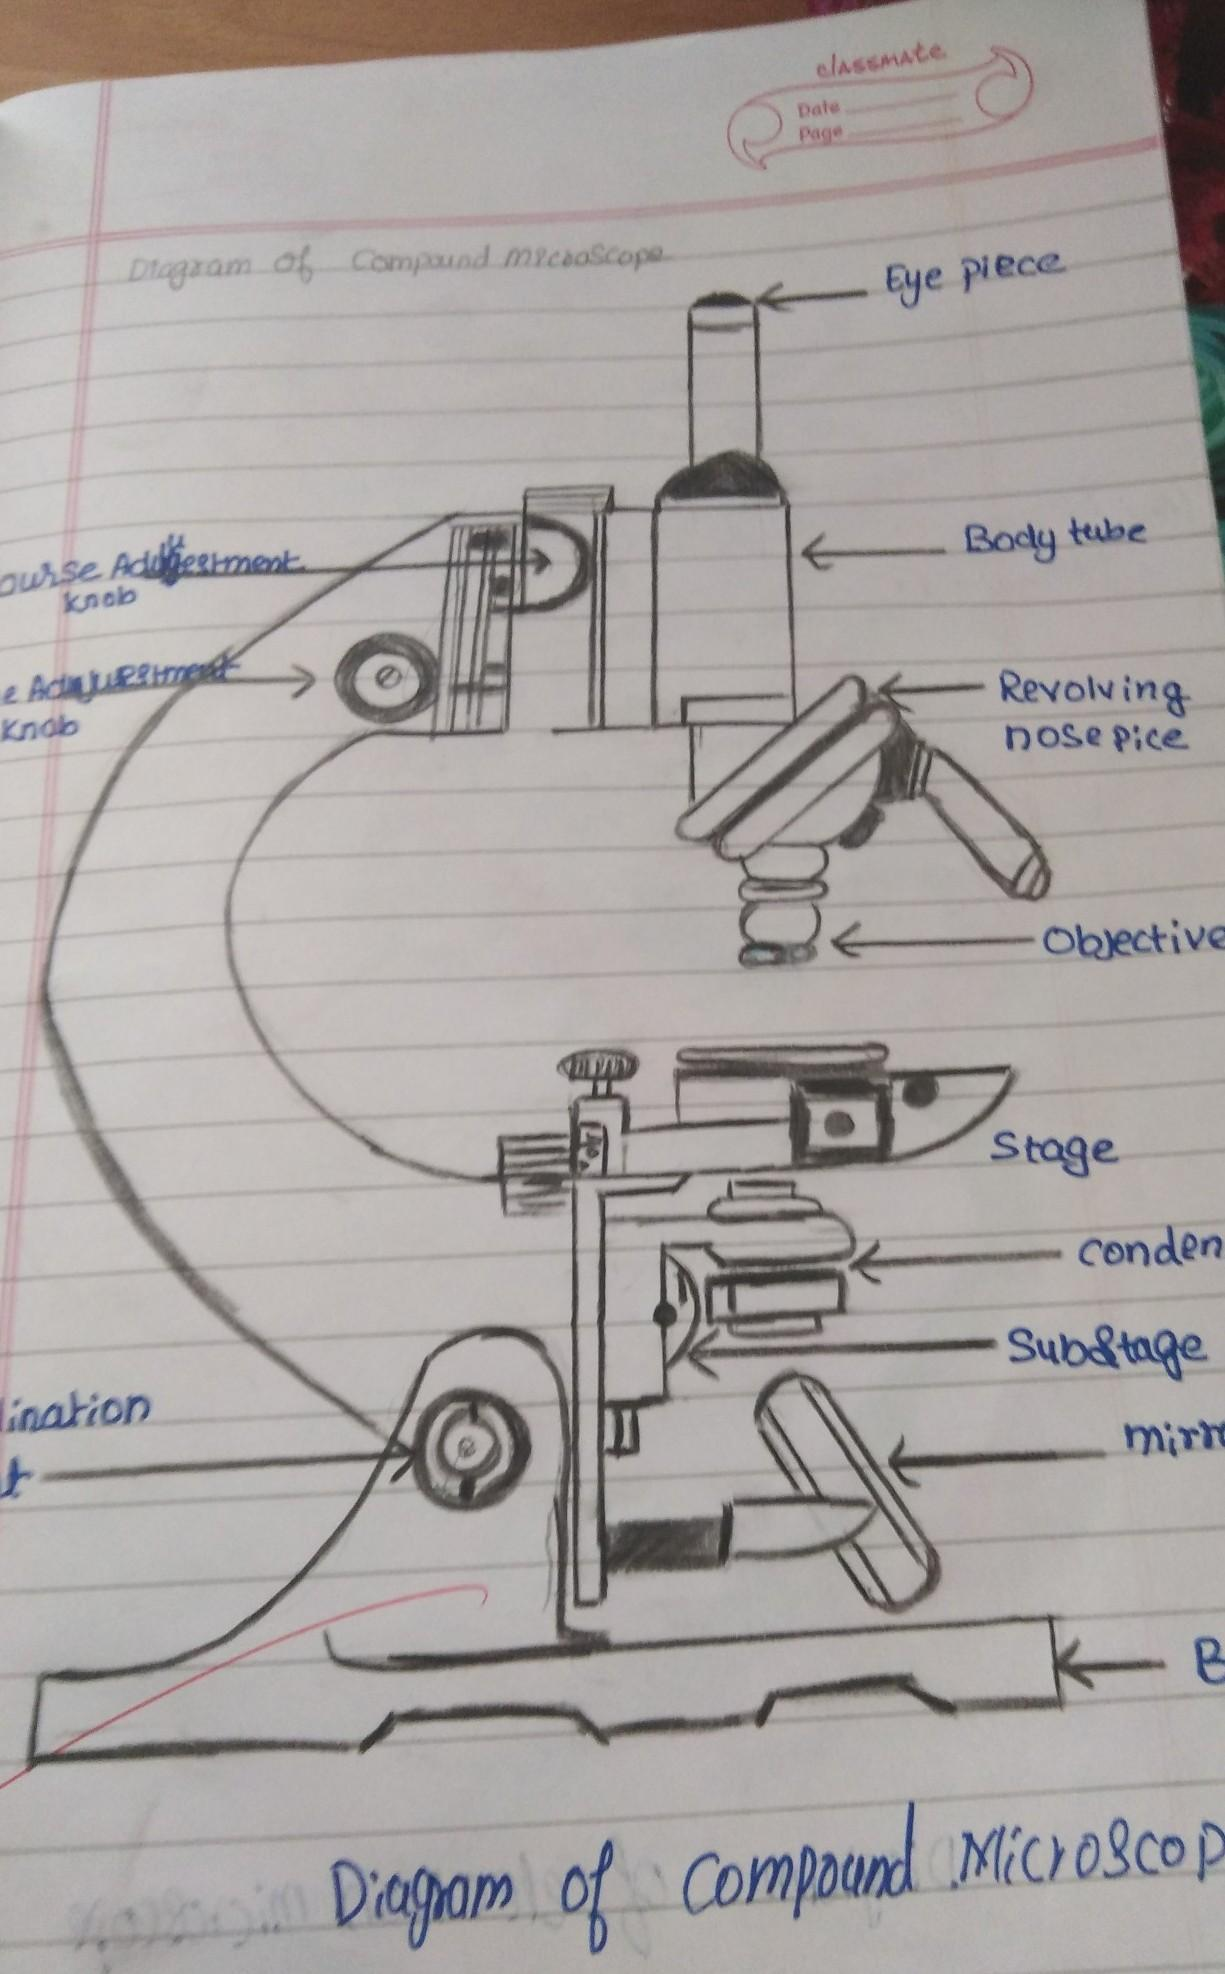 How To Draw The Diagram Of Compound Microscope